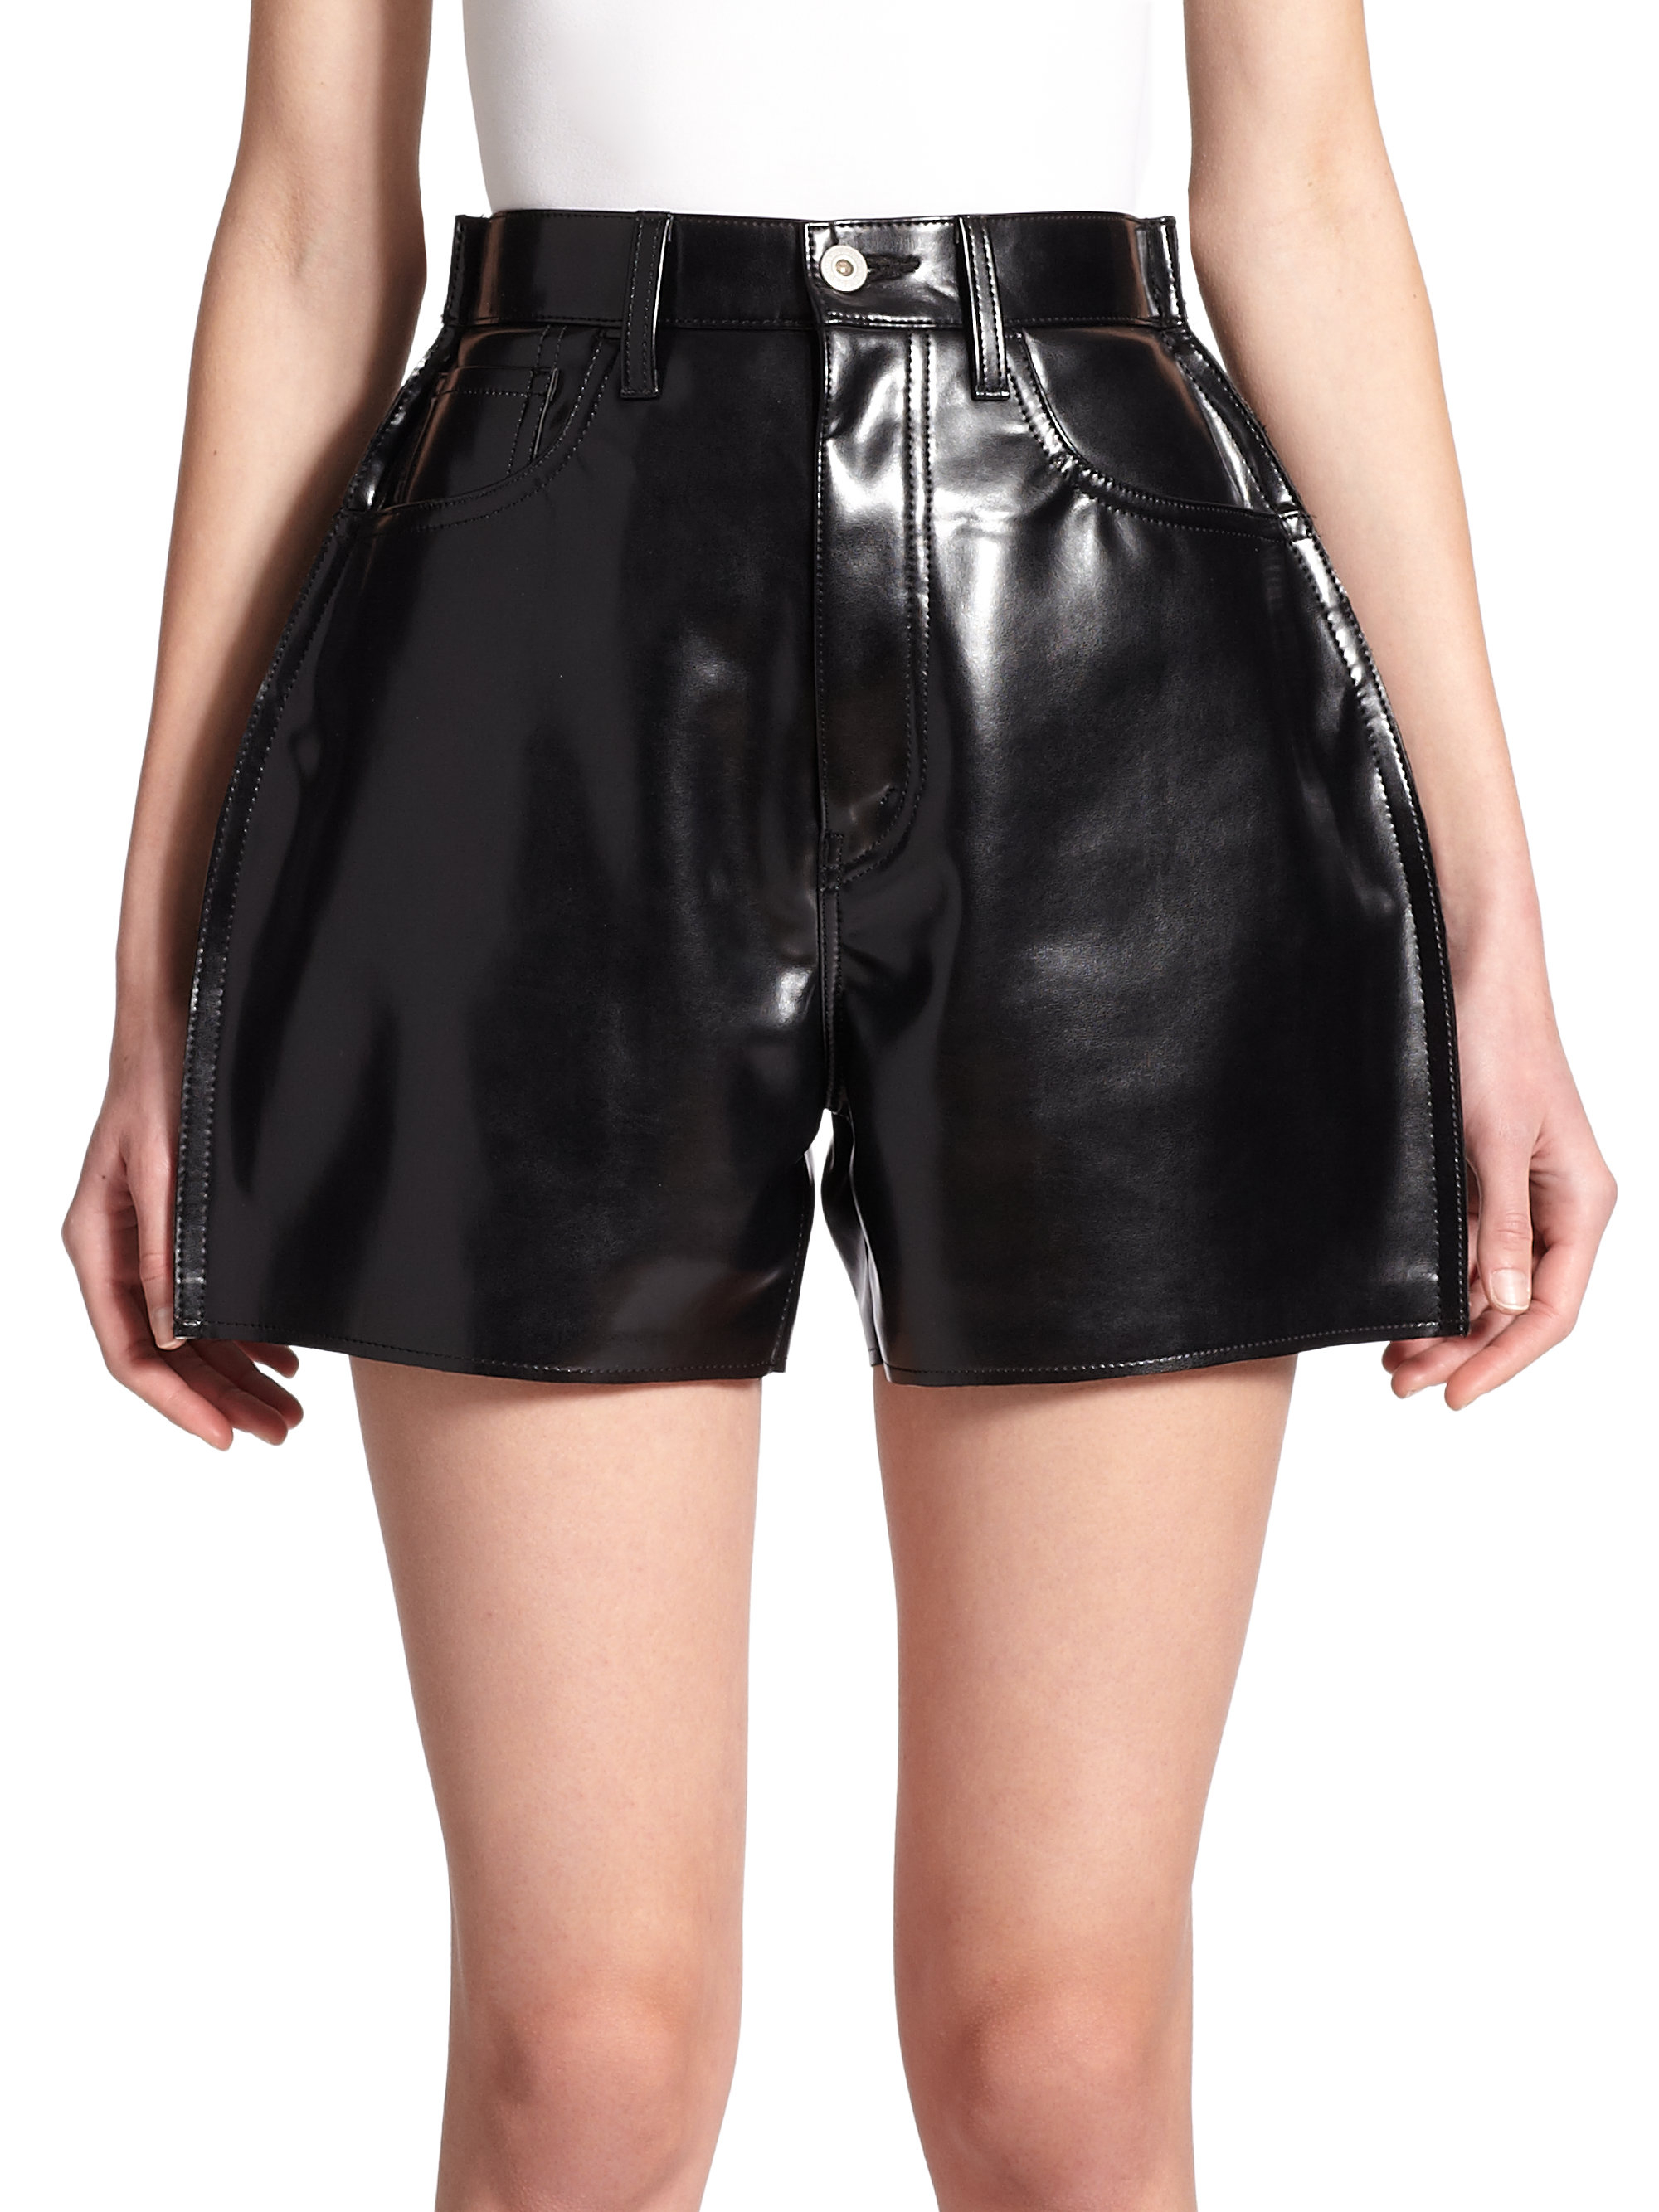 Find a great selection of leather shorts for women at lidarwindtechnolog.ga Shop top brands like Trina Turk, Topshop & more. Check out our entire collection.